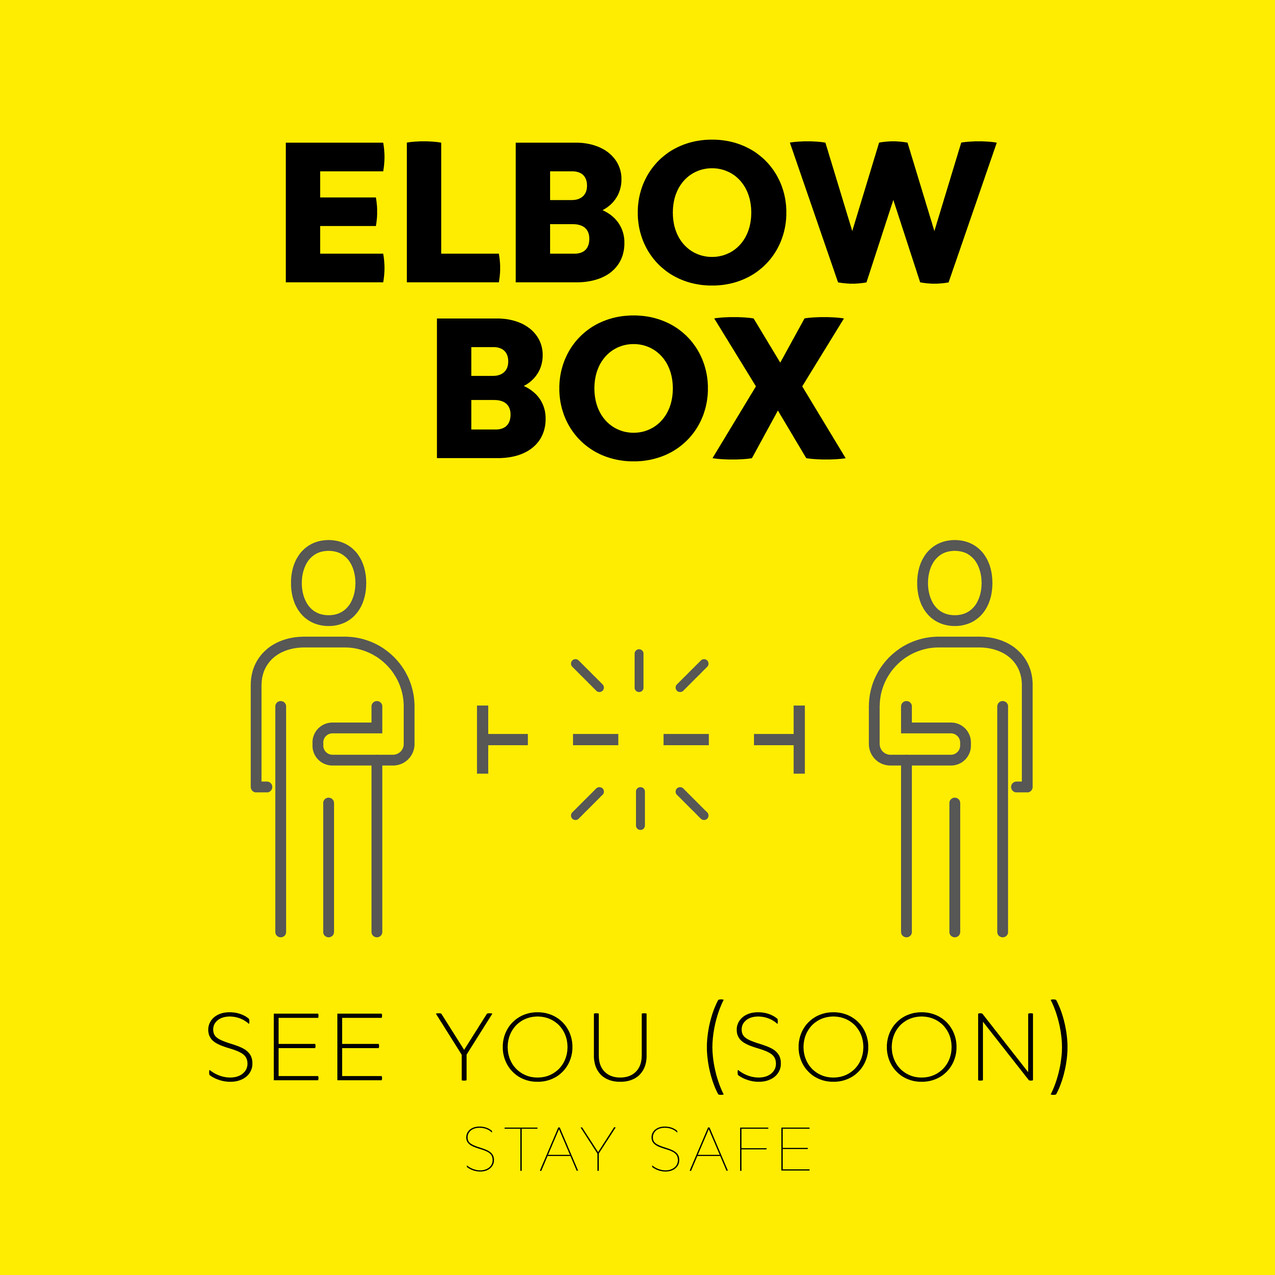 ecard elbow box